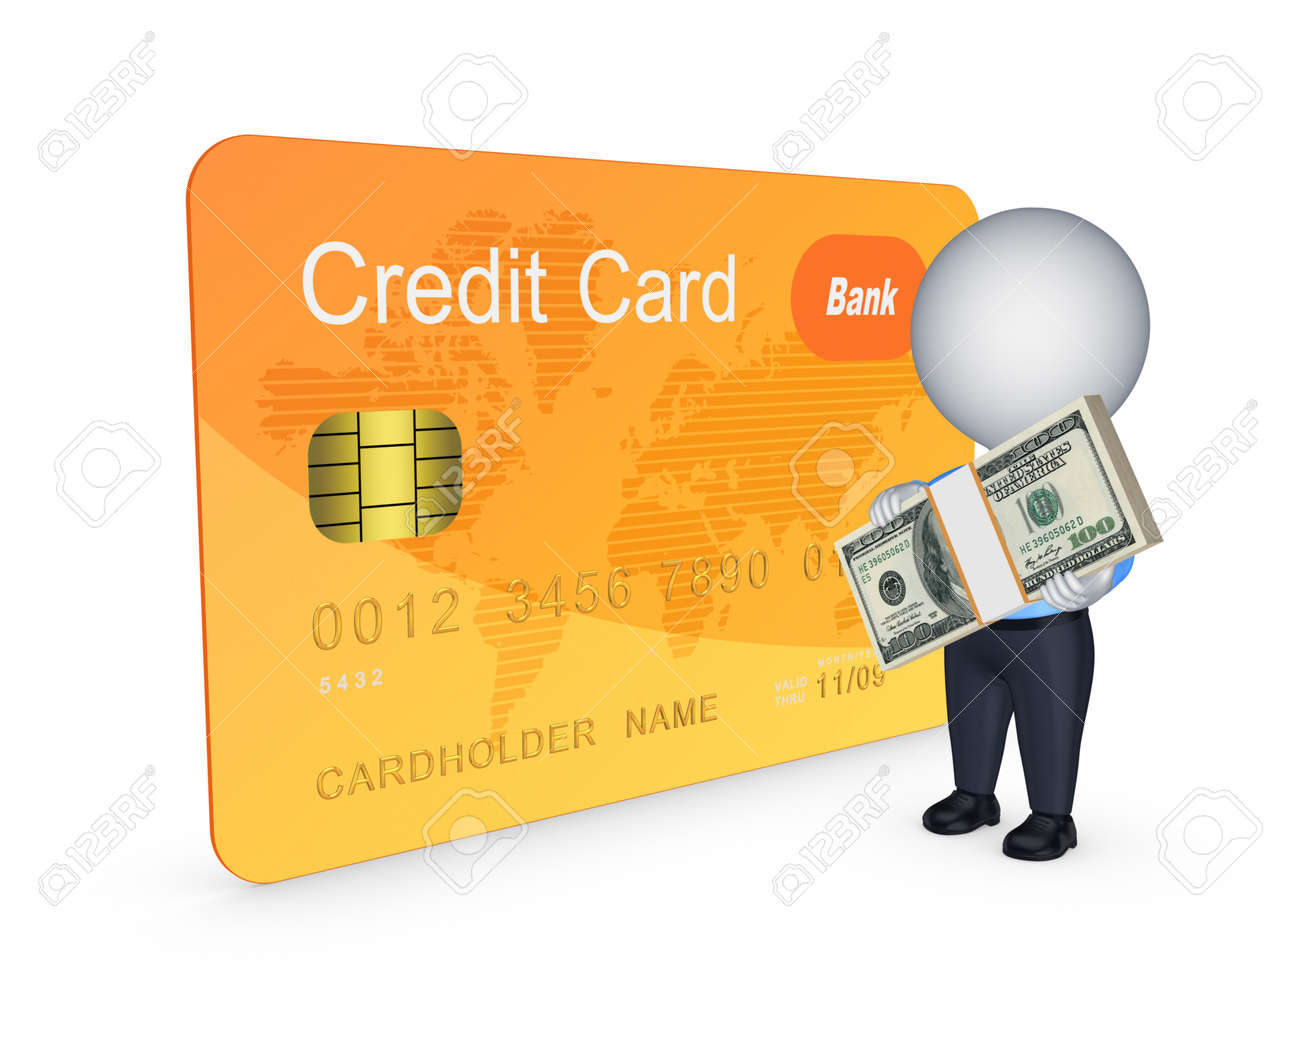 Credit card concept Stock Photo - 20654841